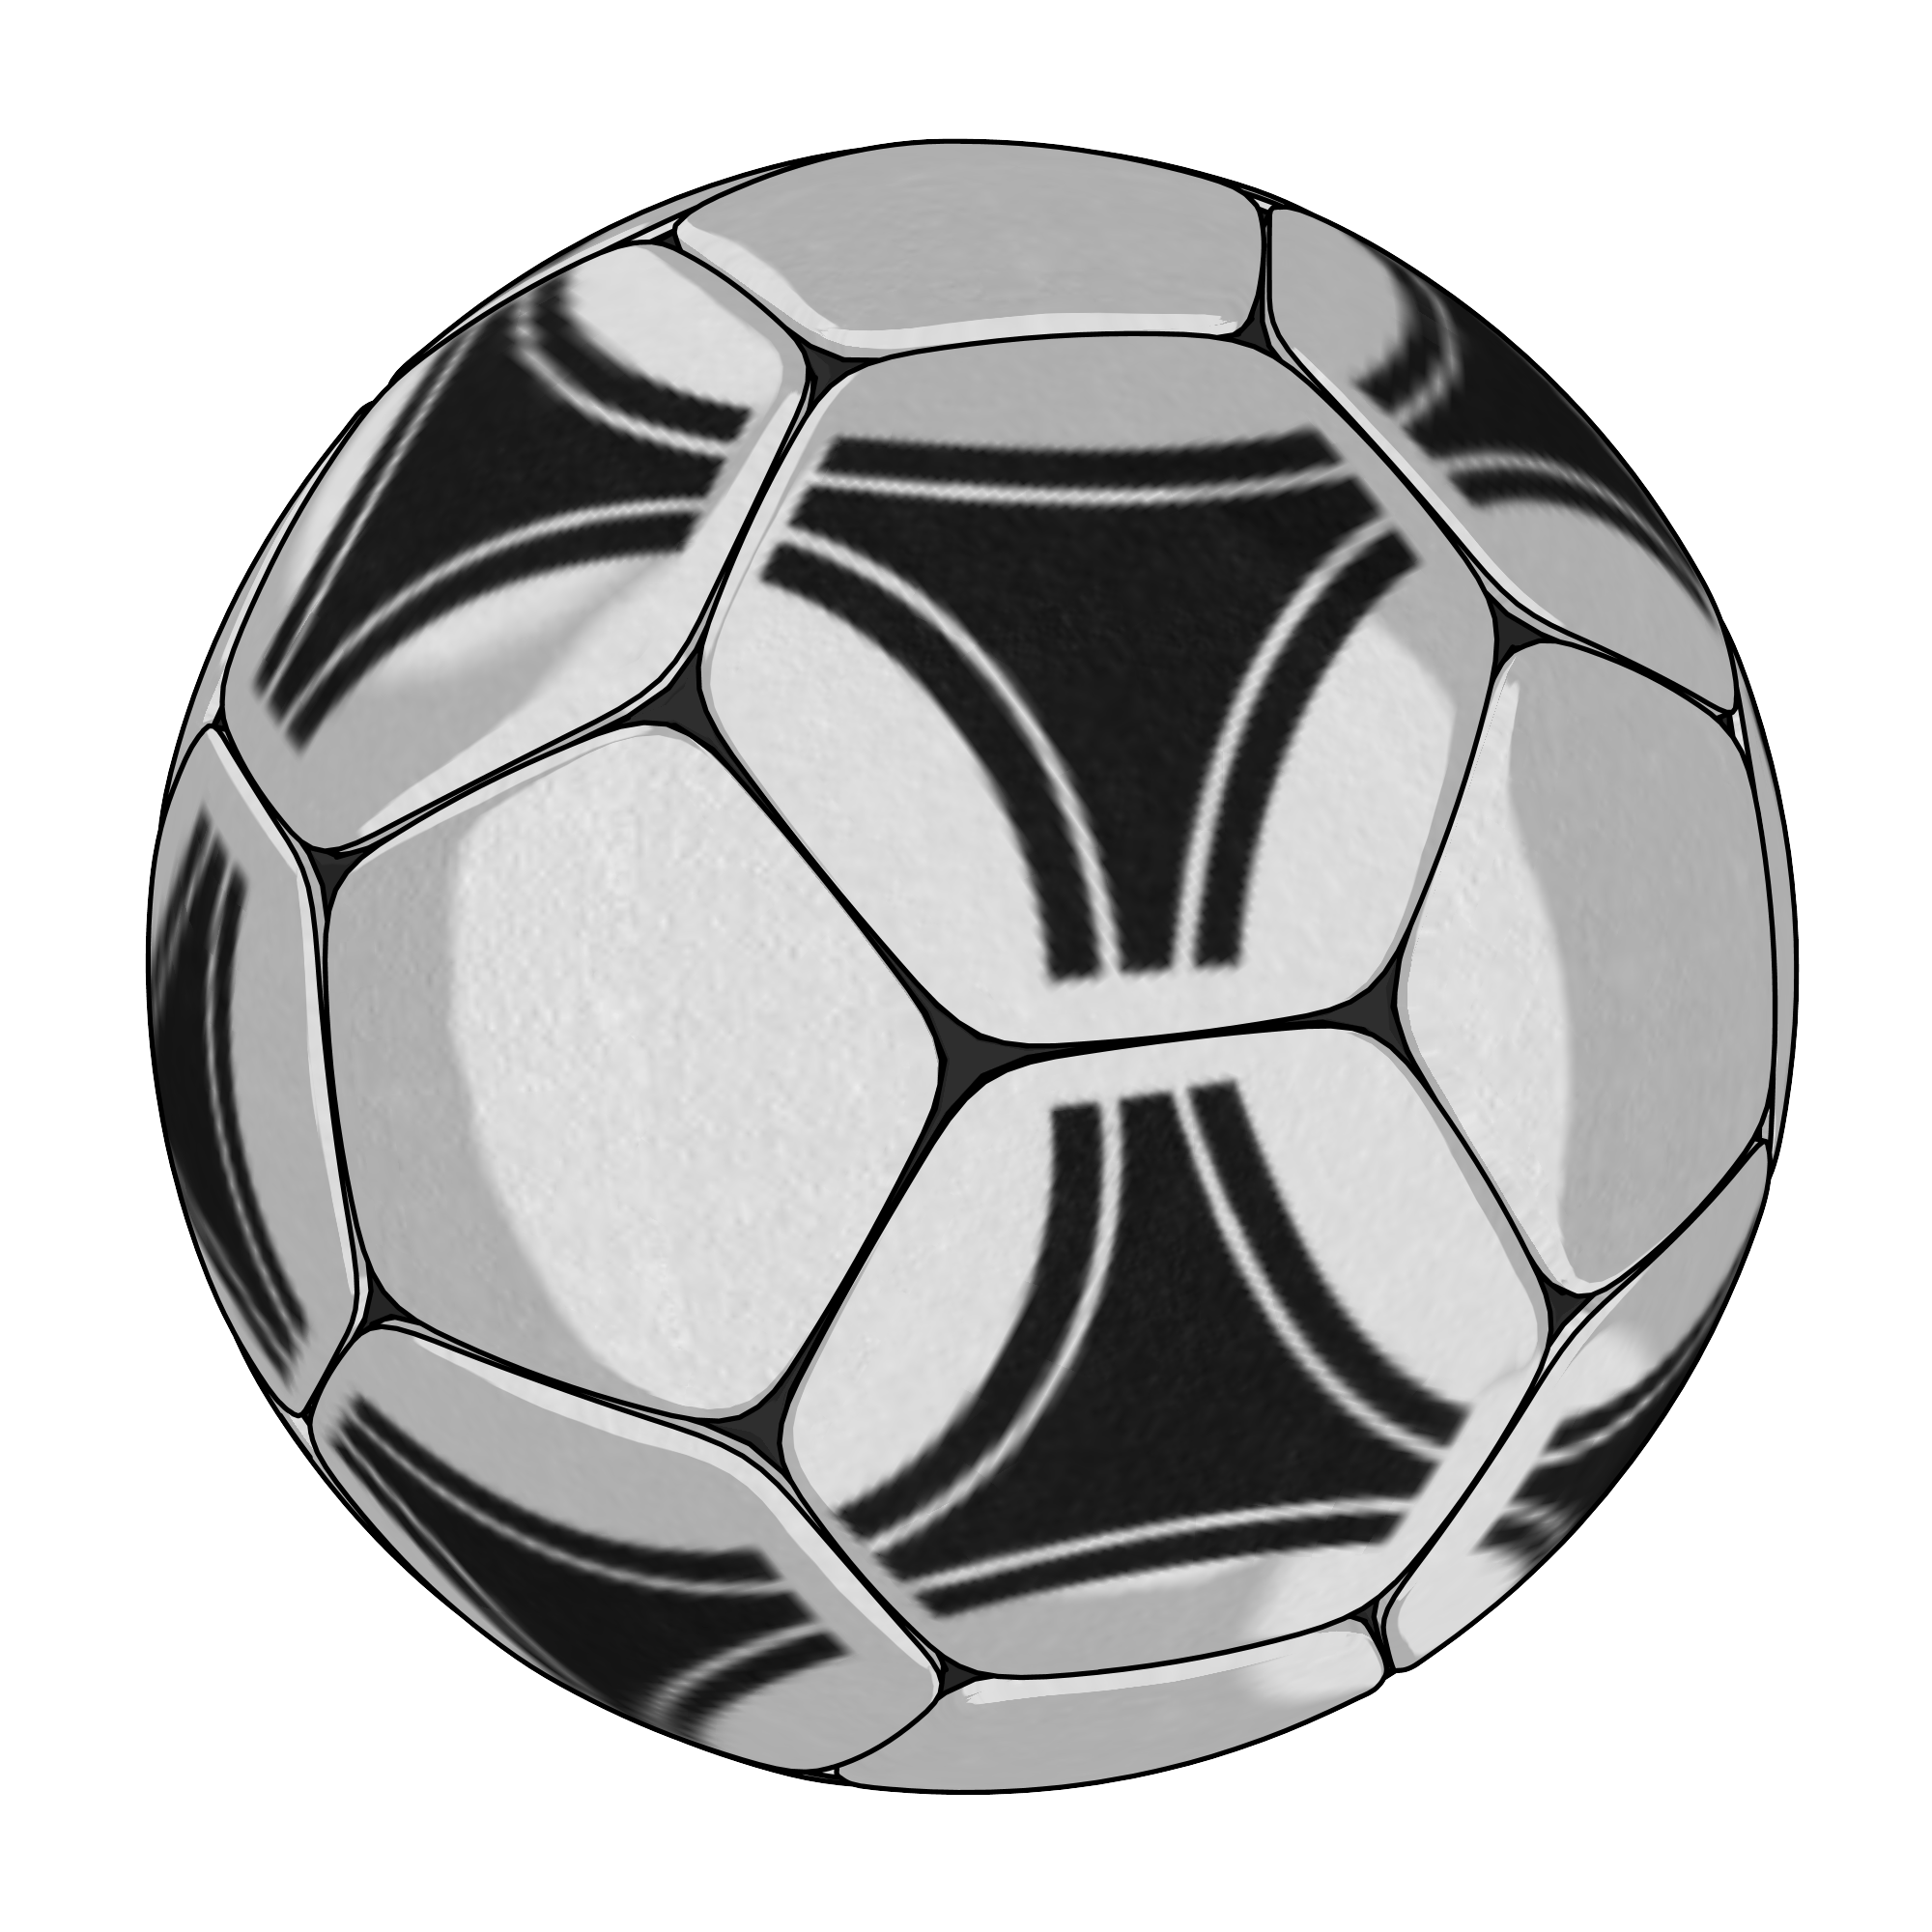 soccer cliparts - HD 2000×2000